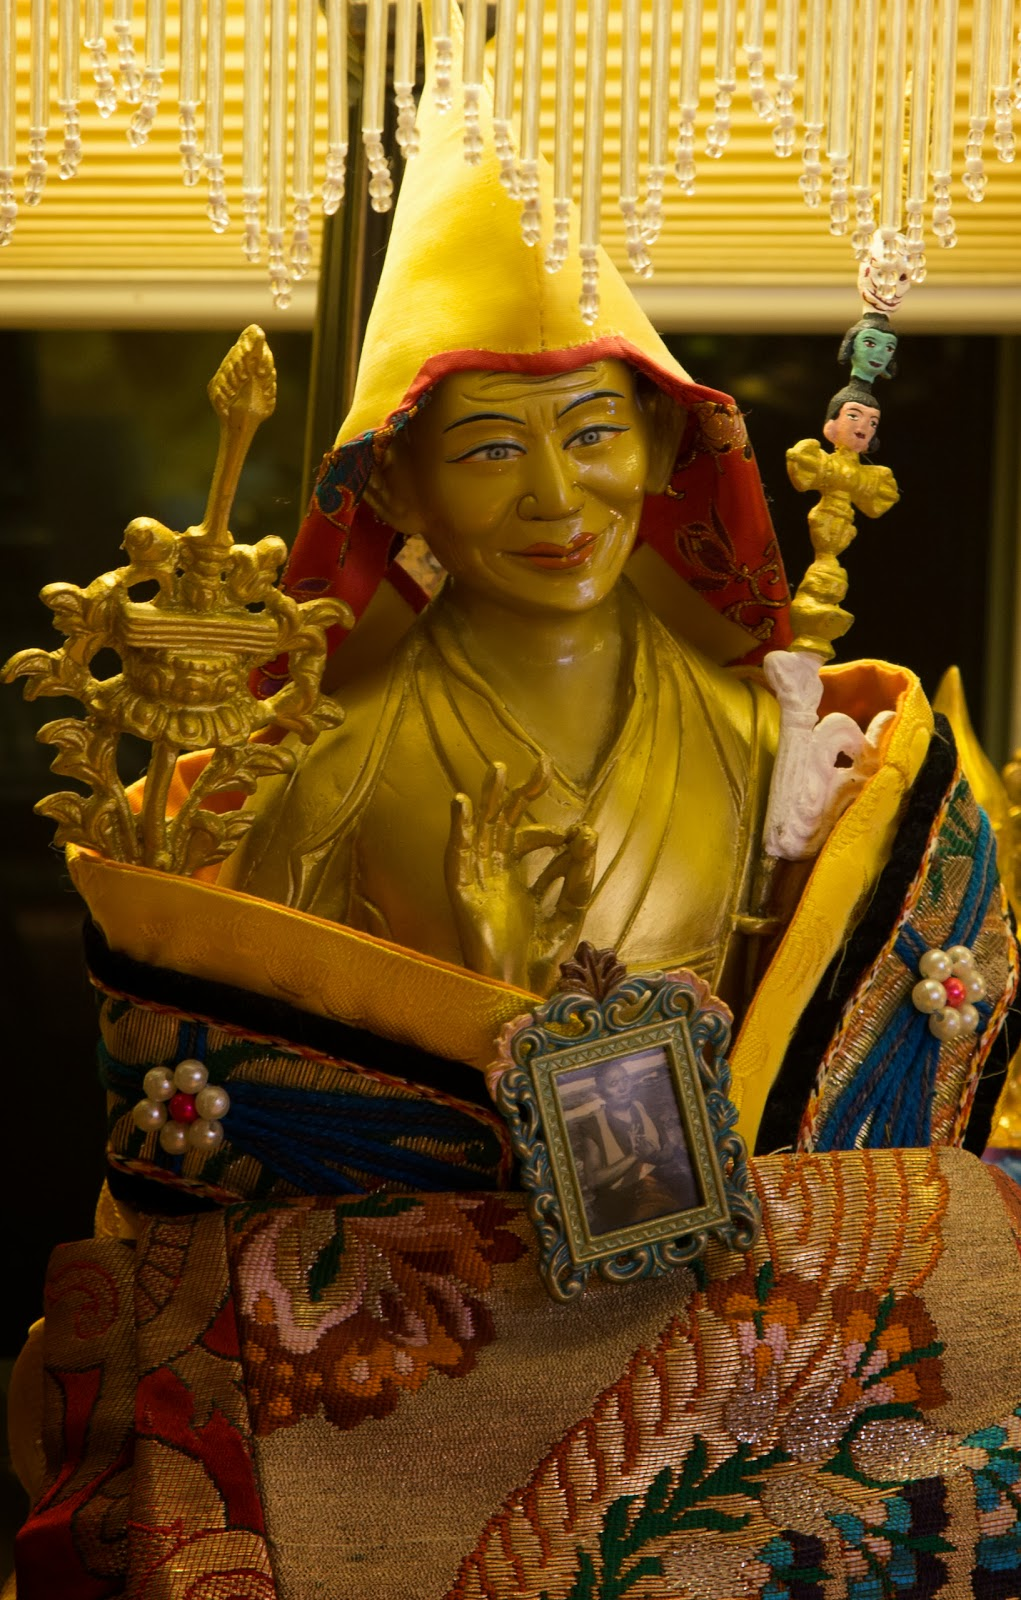 Statue in the Prajnaparamita room. Photo by Ven. Thubten Kunsang.